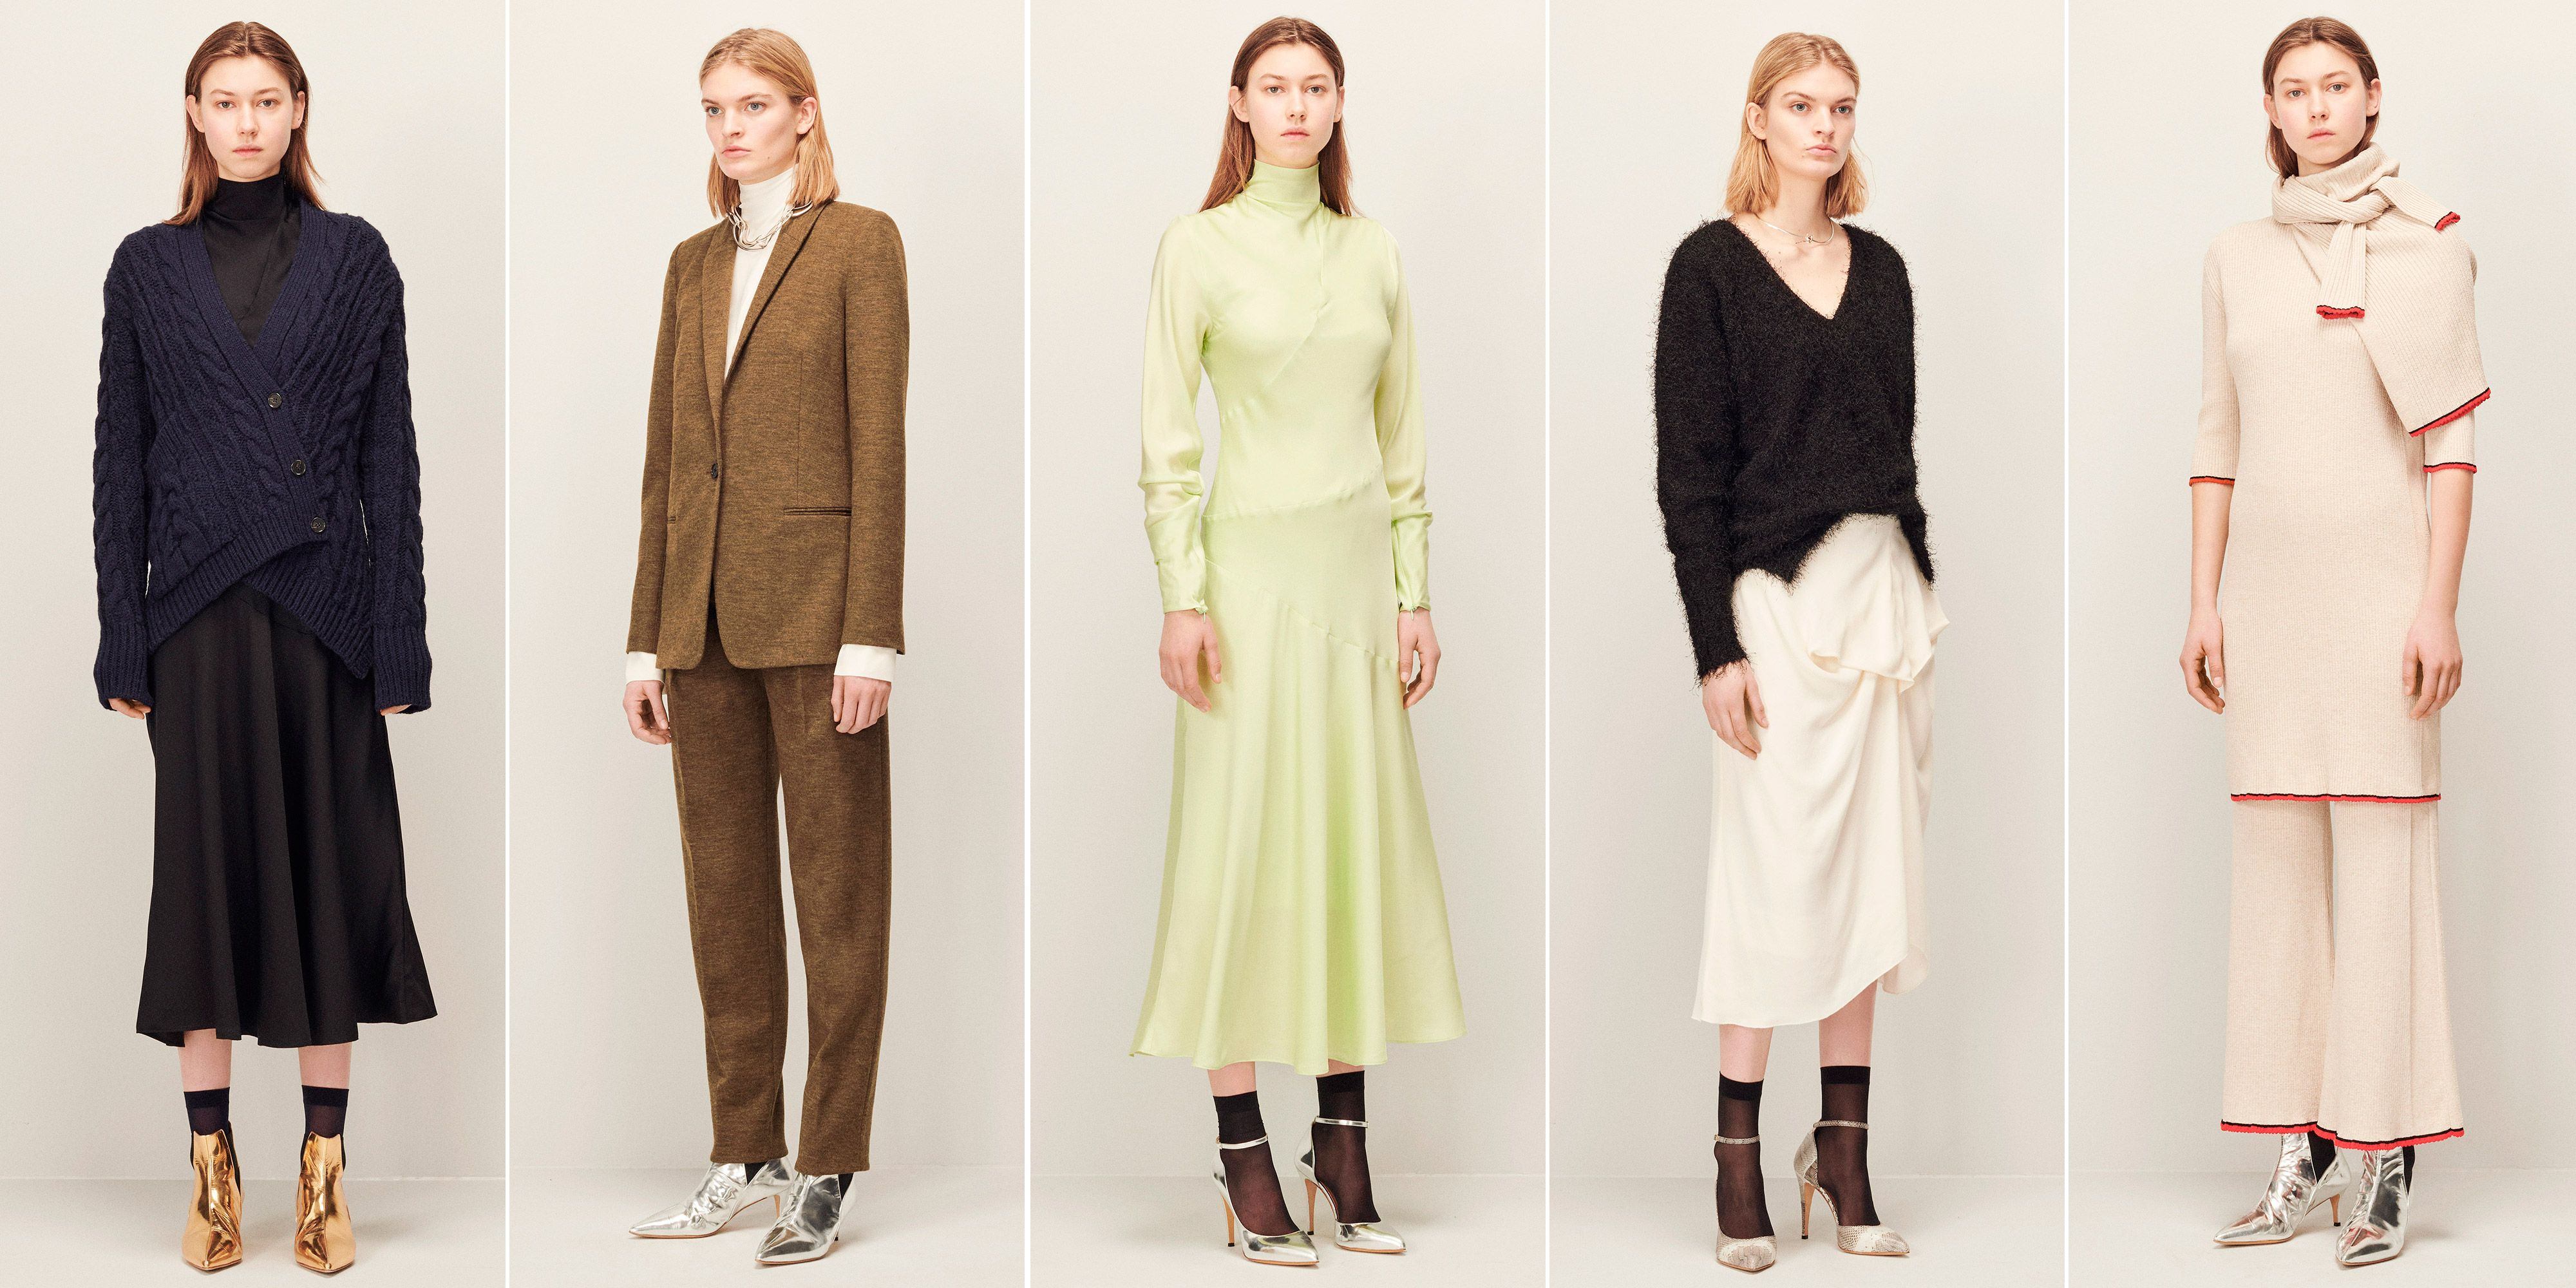 0e19159c8d9c Mathilde Torp Mader on why Scandi style has such international appeal